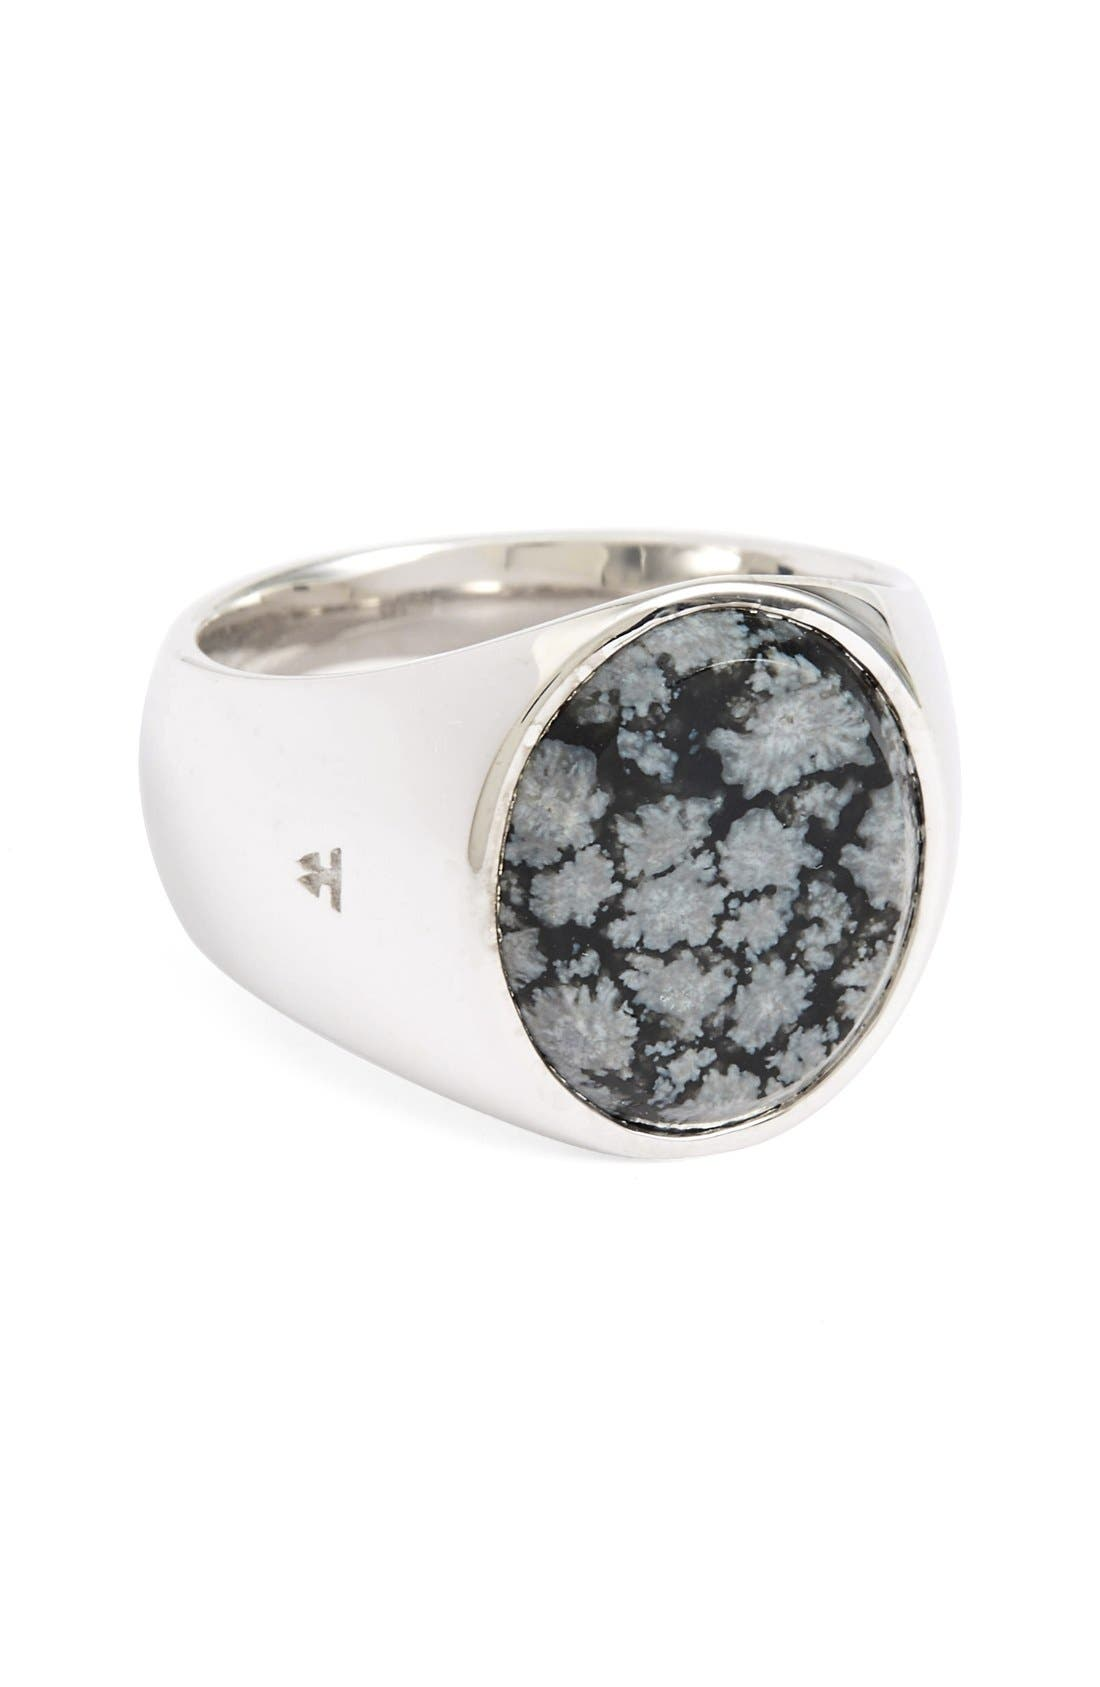 Snowflake Obsidian Oval Signet Ring,                             Main thumbnail 1, color,